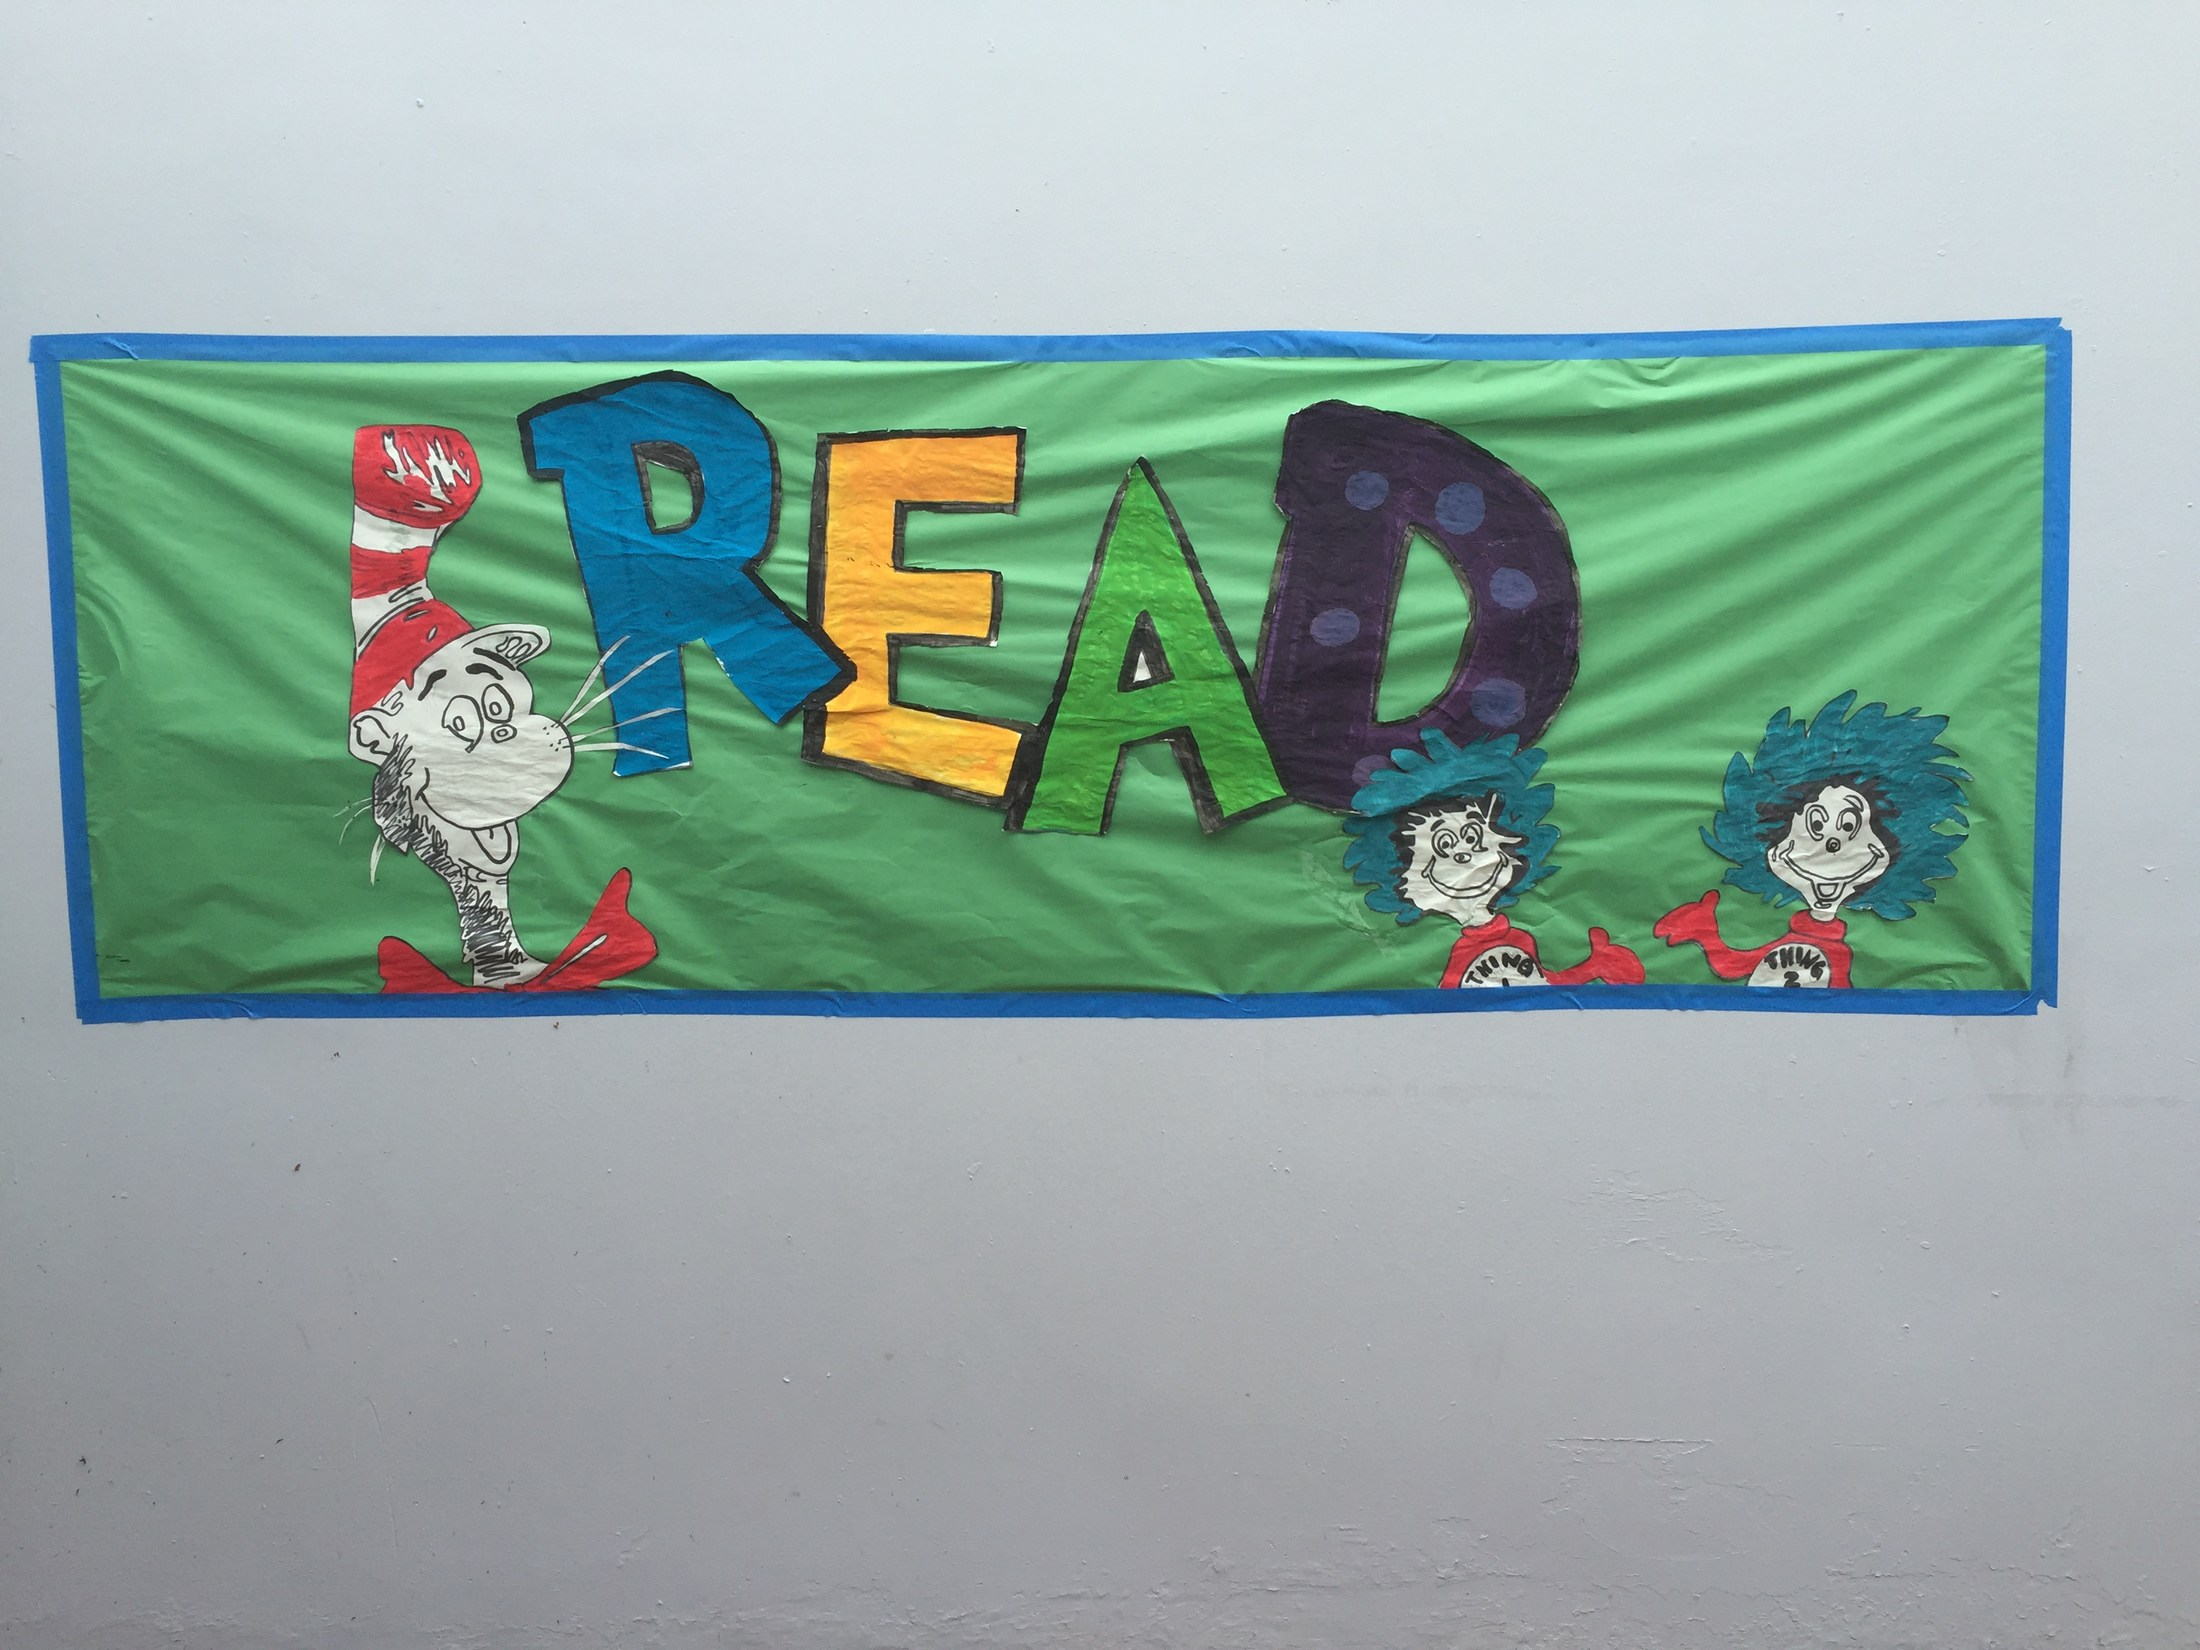 The Cat in the Hat READ banner